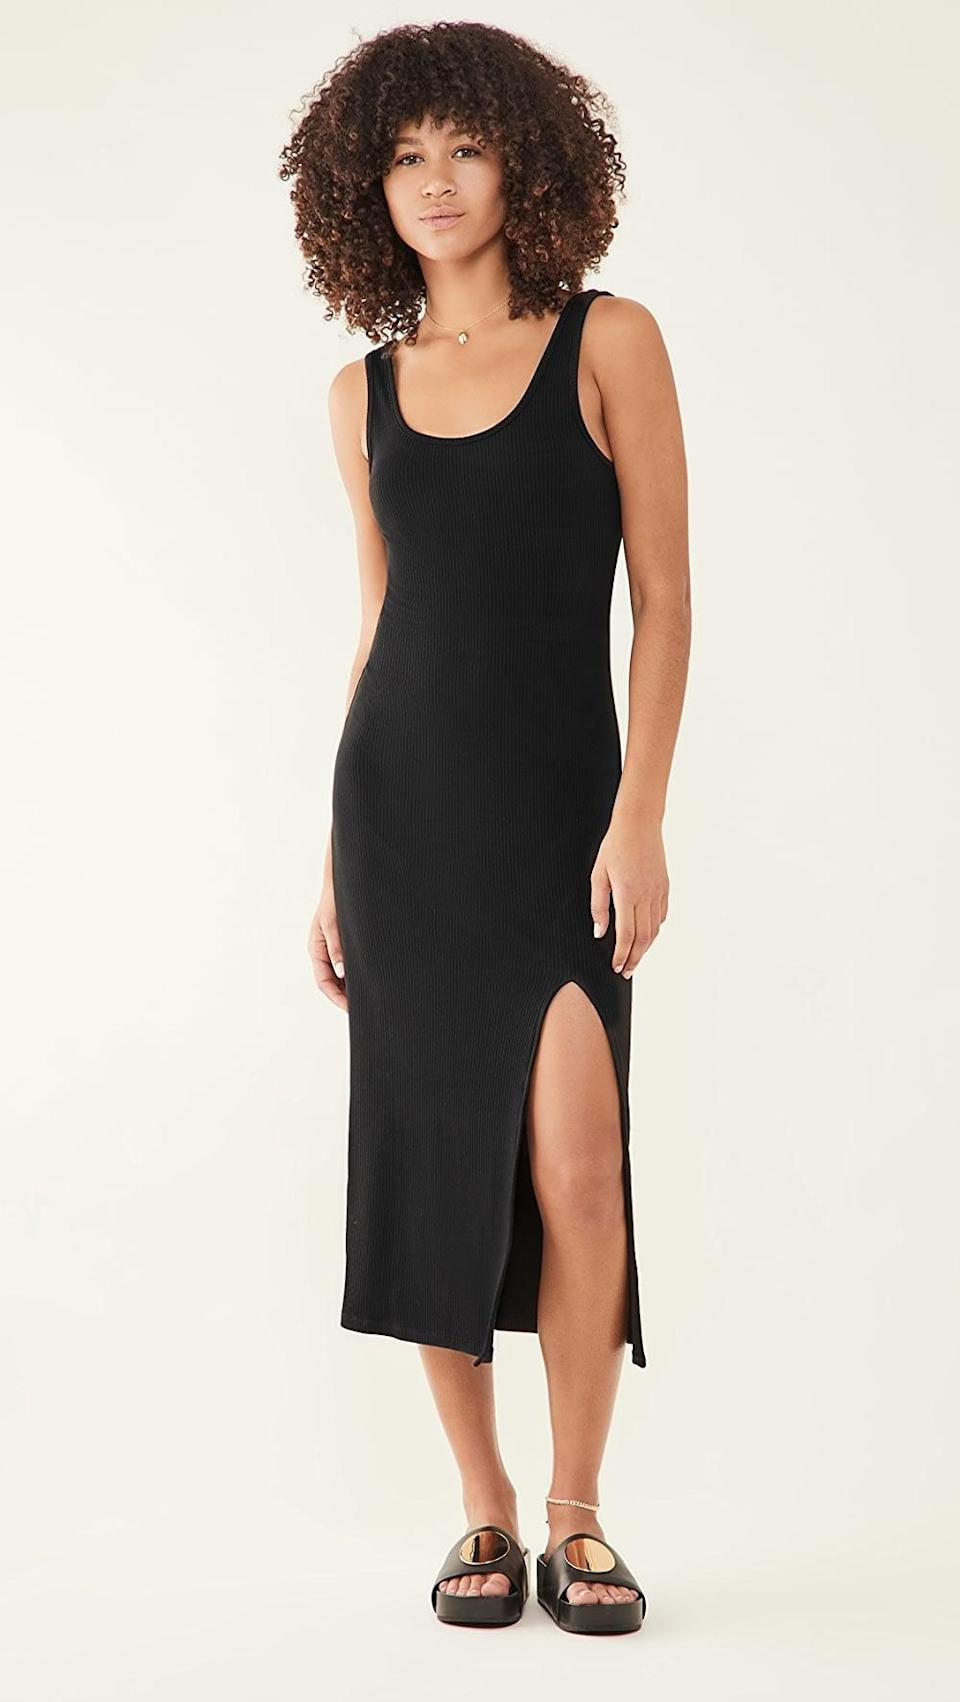 <p>Meet your new everyday style: the <span>Z Supply Melina Rib Dress</span> ($68).</p>